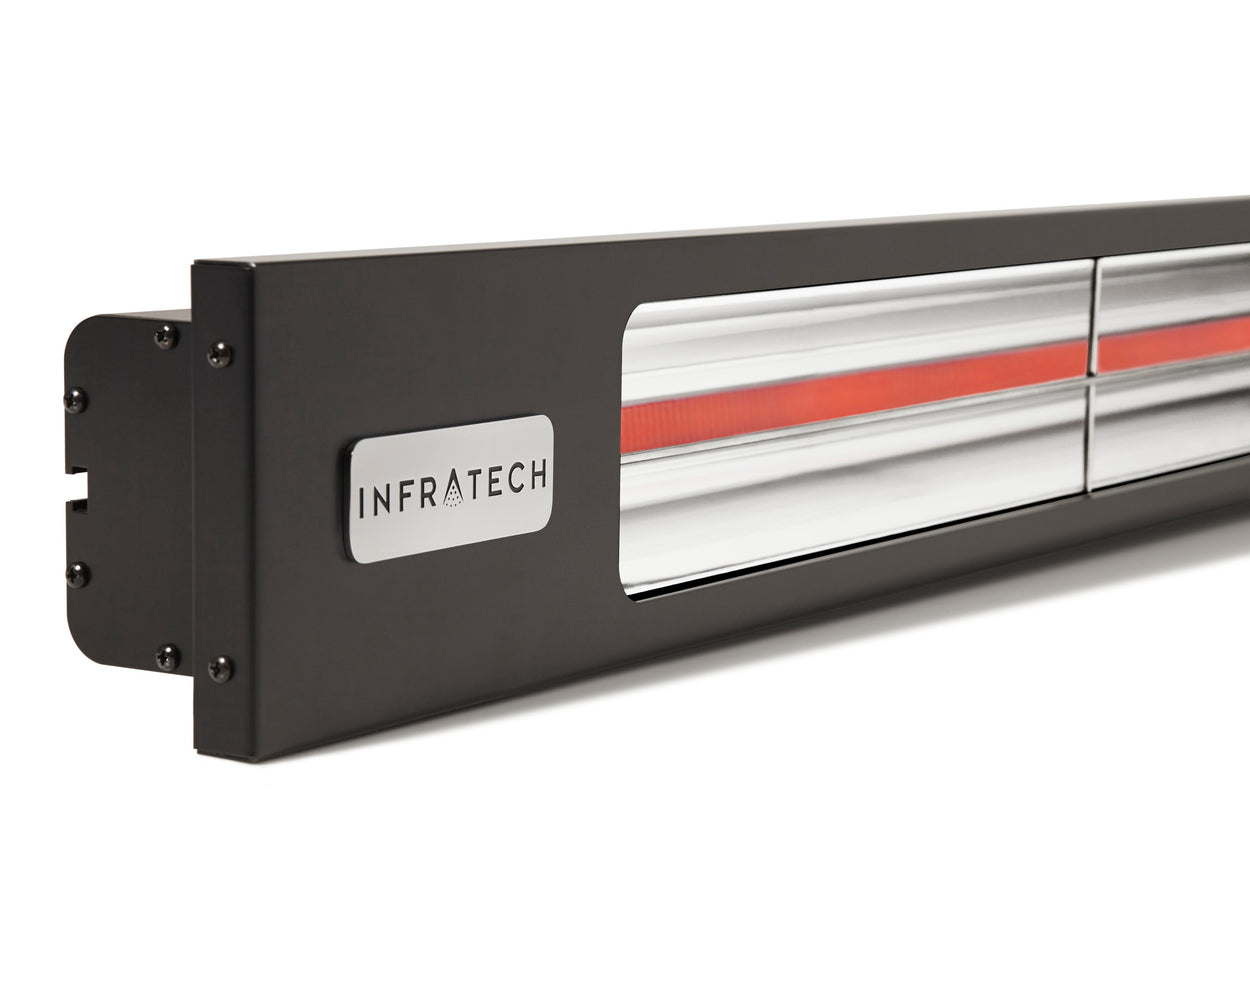 INFRATECH SL24 2.4KW HEATER BLACK SHADOW | Outdoor Heating NZ | Infratech NZ | | Outdoor Concepts